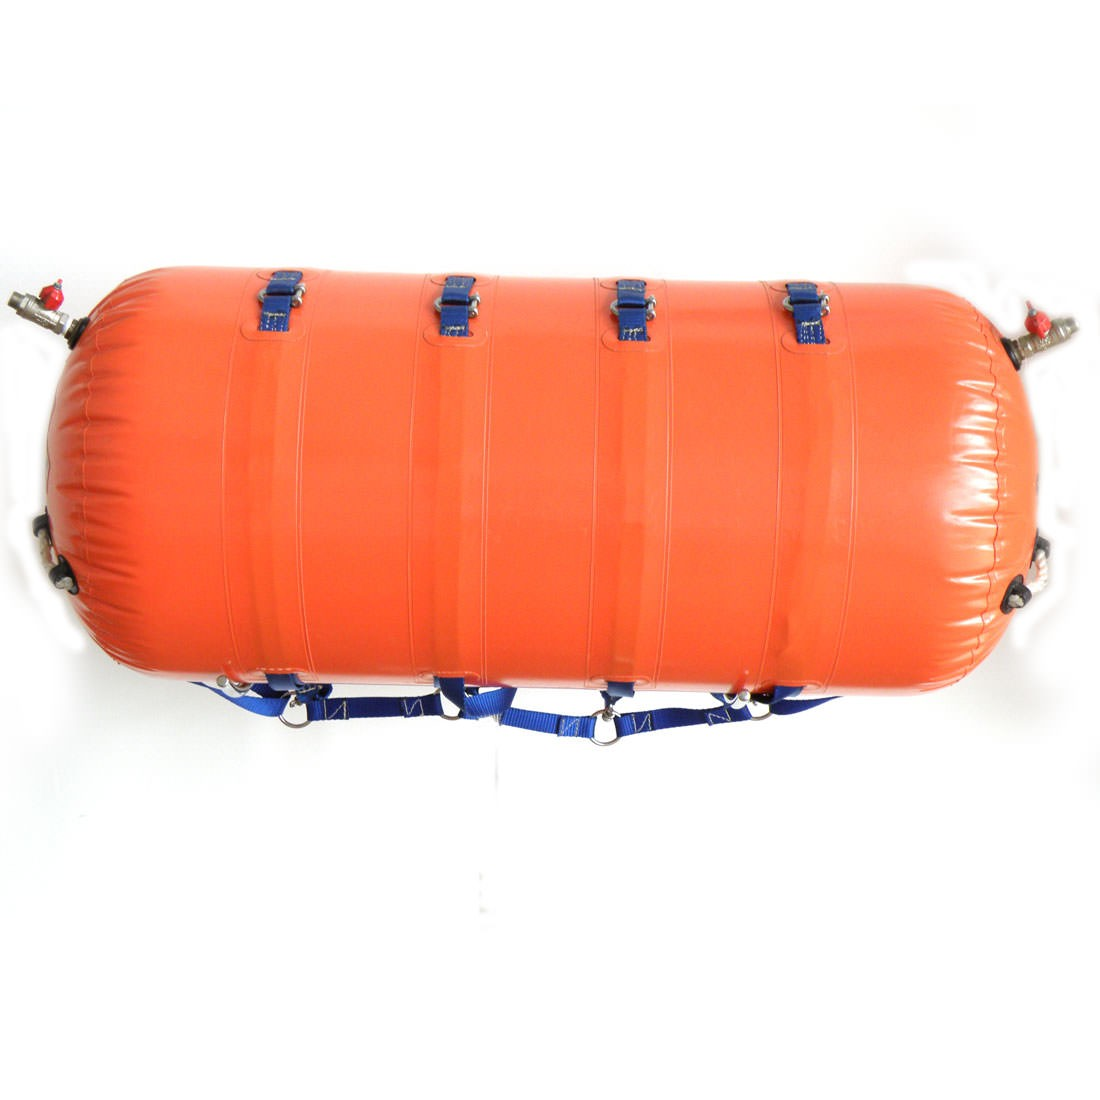 Seaflex 100kg Inflatable Buoyancy Unit